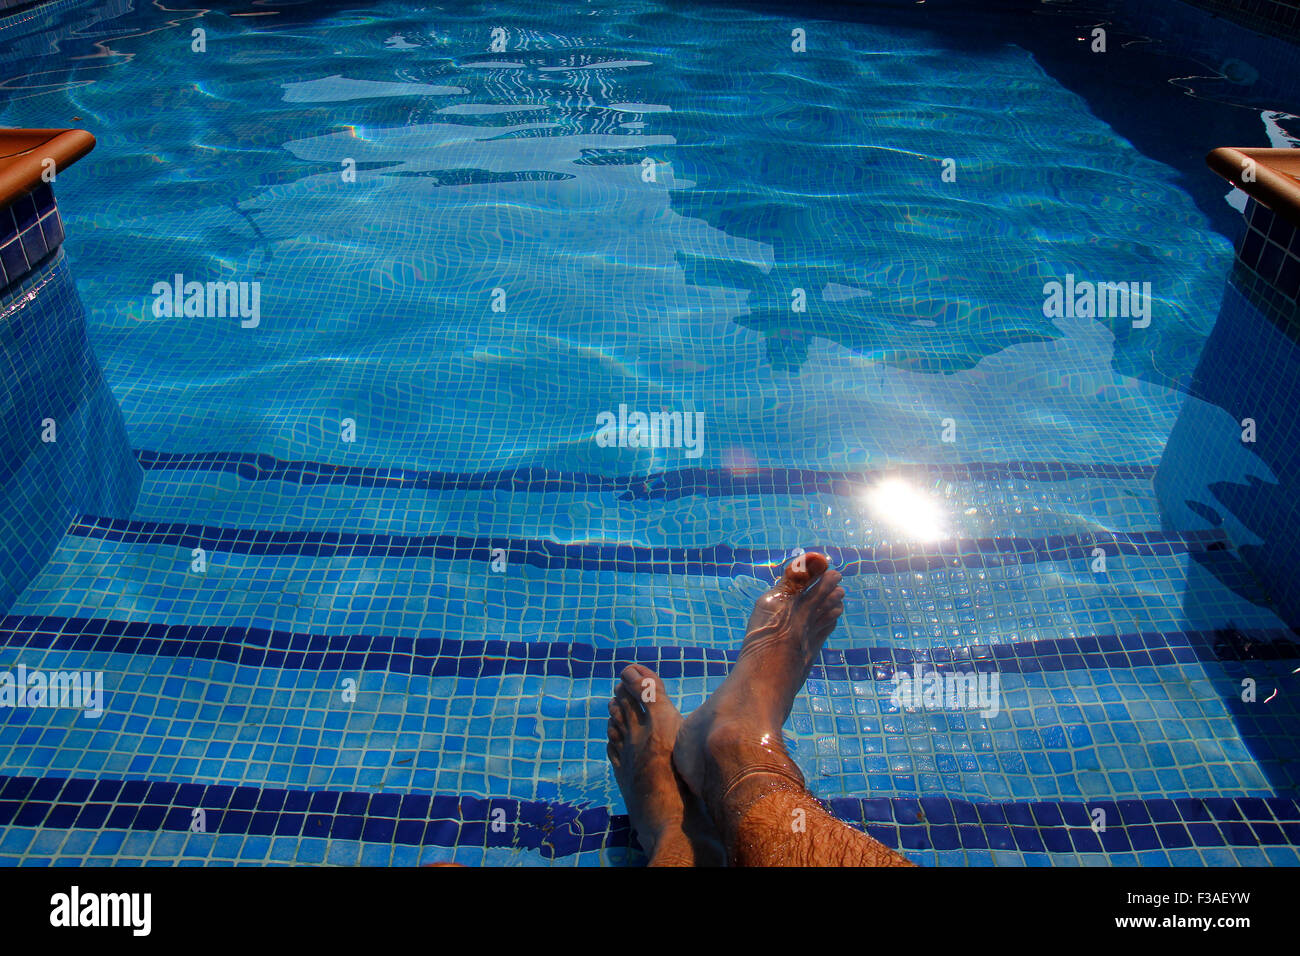 Human feet in a pool, transparent water - Stock Image